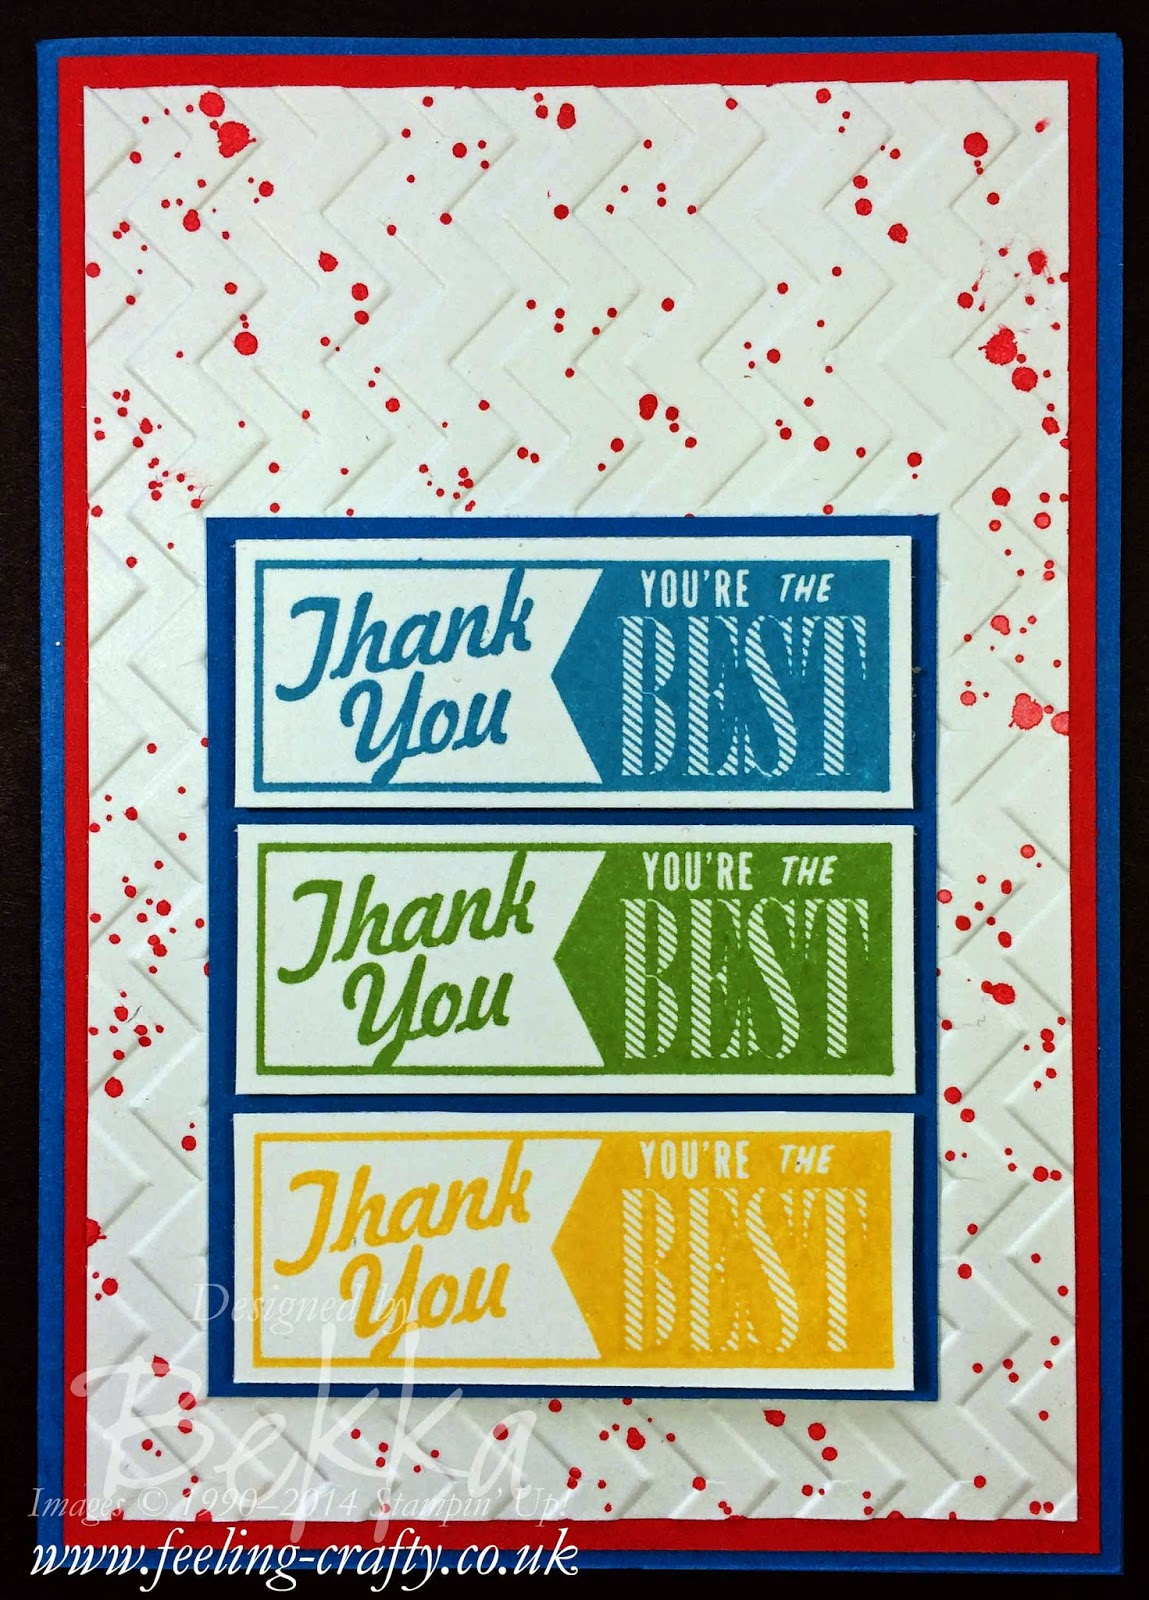 Thank You Card using the Hello Lovely Stamp Set from Stampin' Up! - check out this UK blog for lots of great projects using Stampin' Up! Supplies